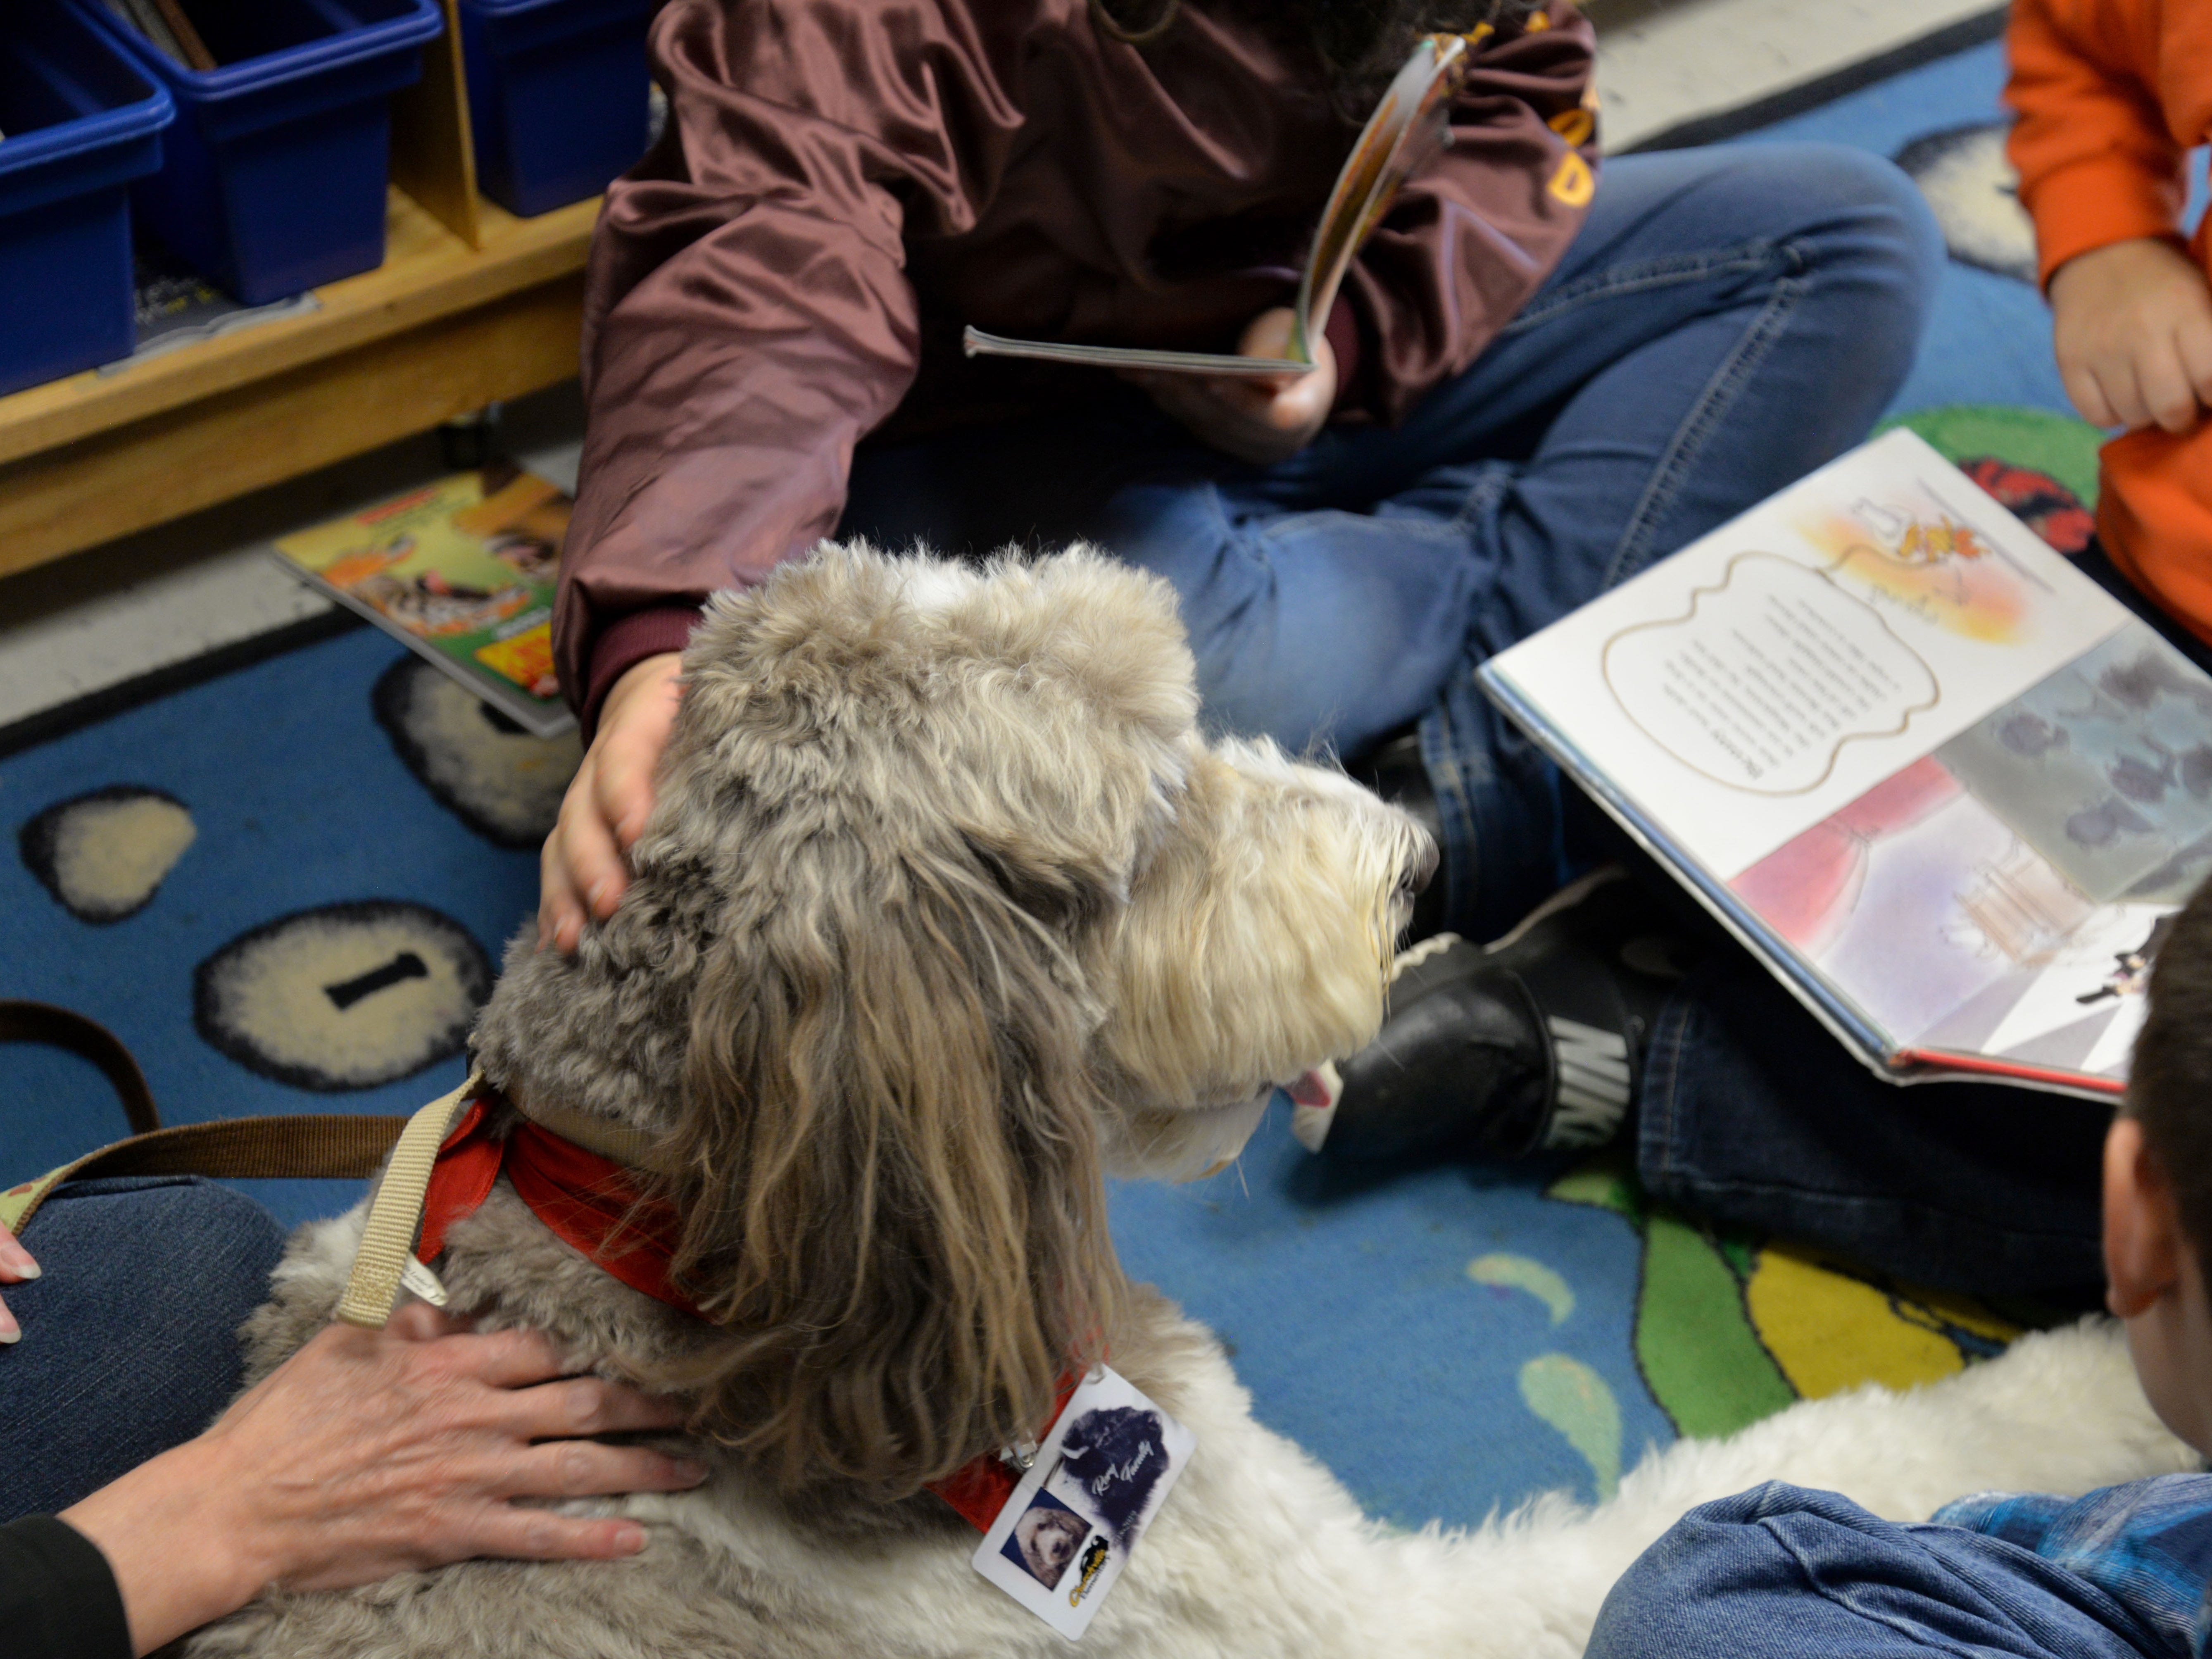 Kathleen Wilson and her labradoodle, Rory, visit Churchville Elementary once a week so students can read to the dog. Rory is a certified therapy dog and is allowed in any Augusta County School or school function.